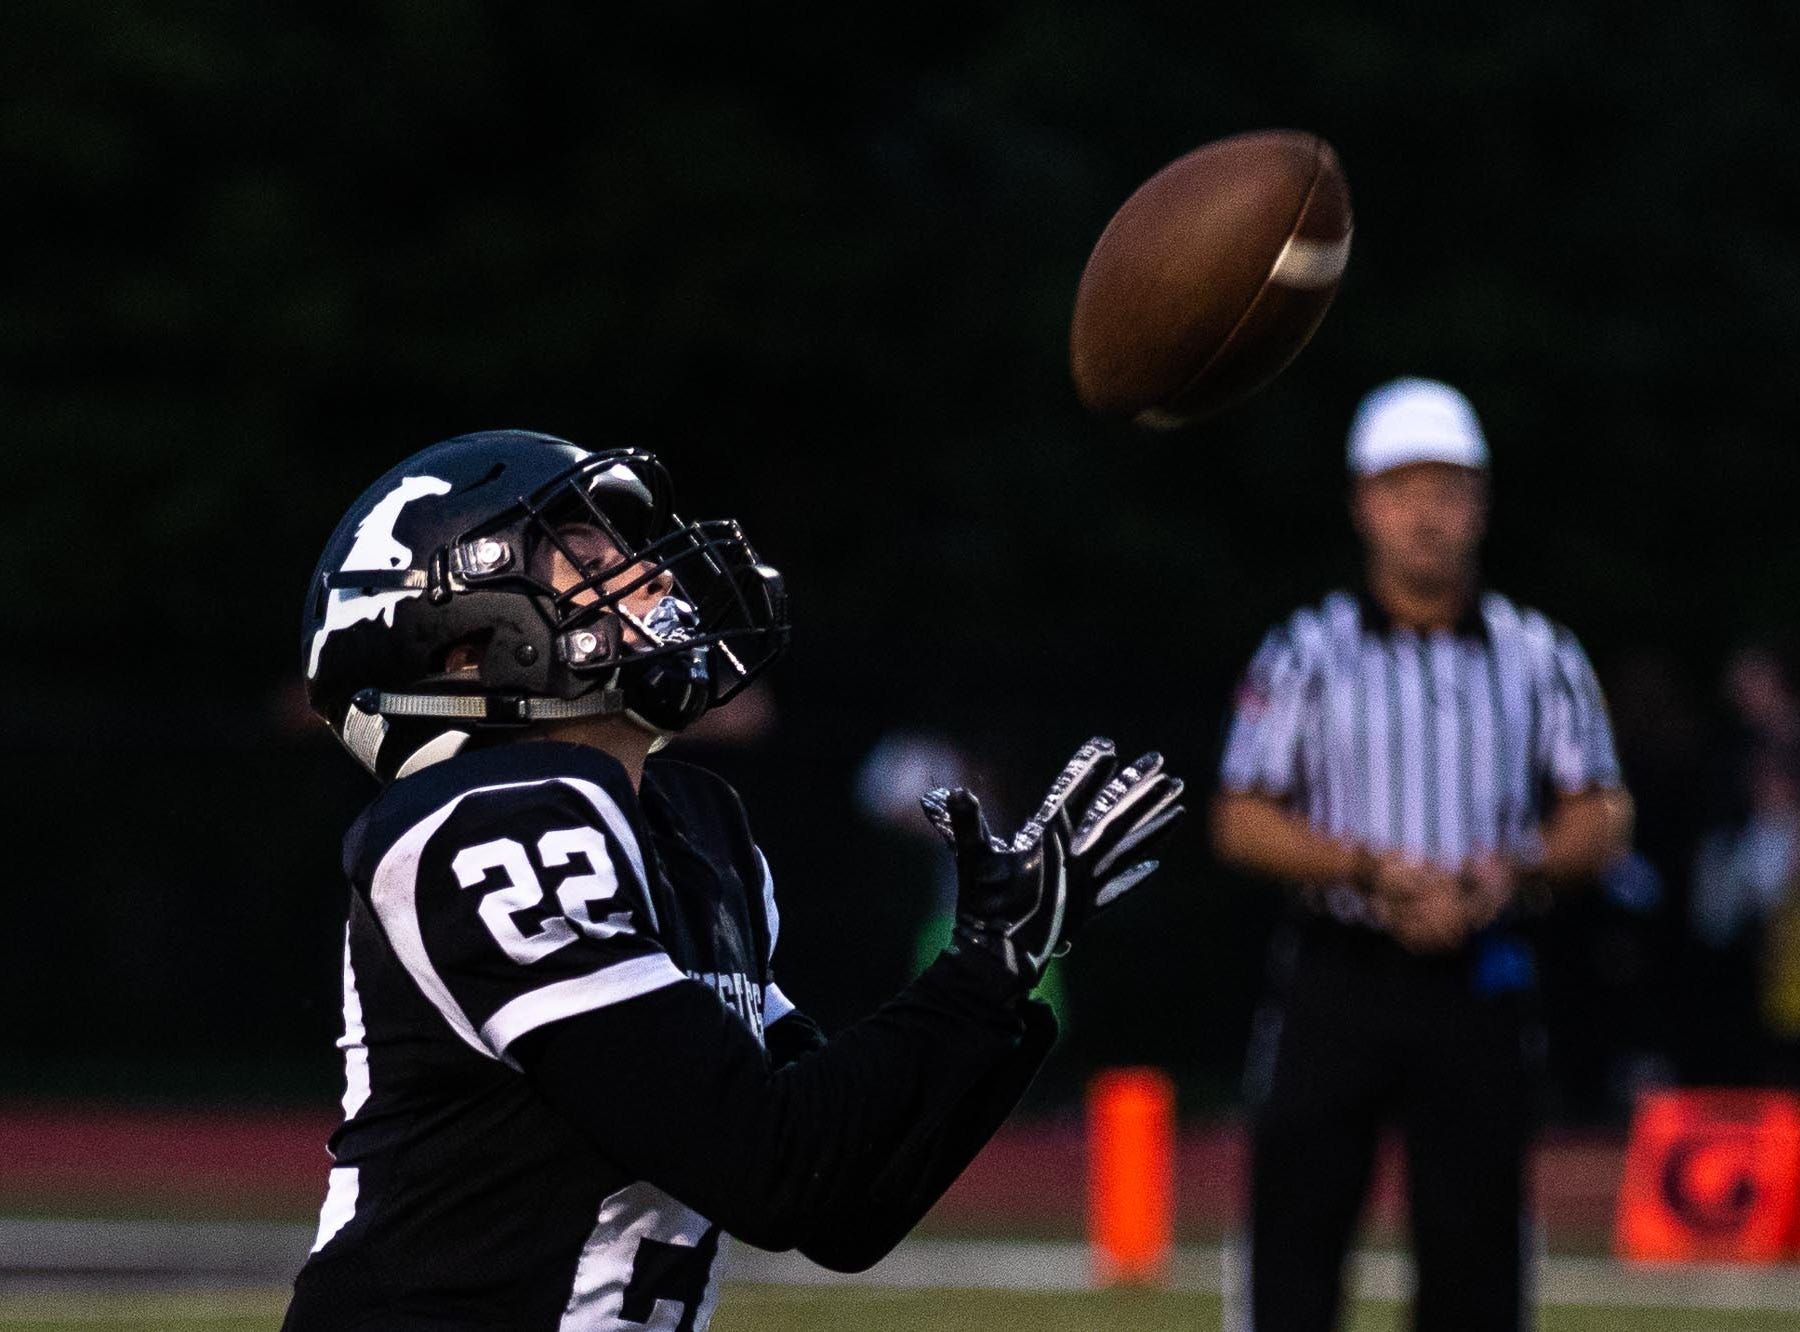 South Western's Aaron Fry (22) catches the bal during a football game between South Western and Dallastown, Friday, Sept. 14, 2018, at South Western High School in Penn Township. Dallastown won, 35-7.